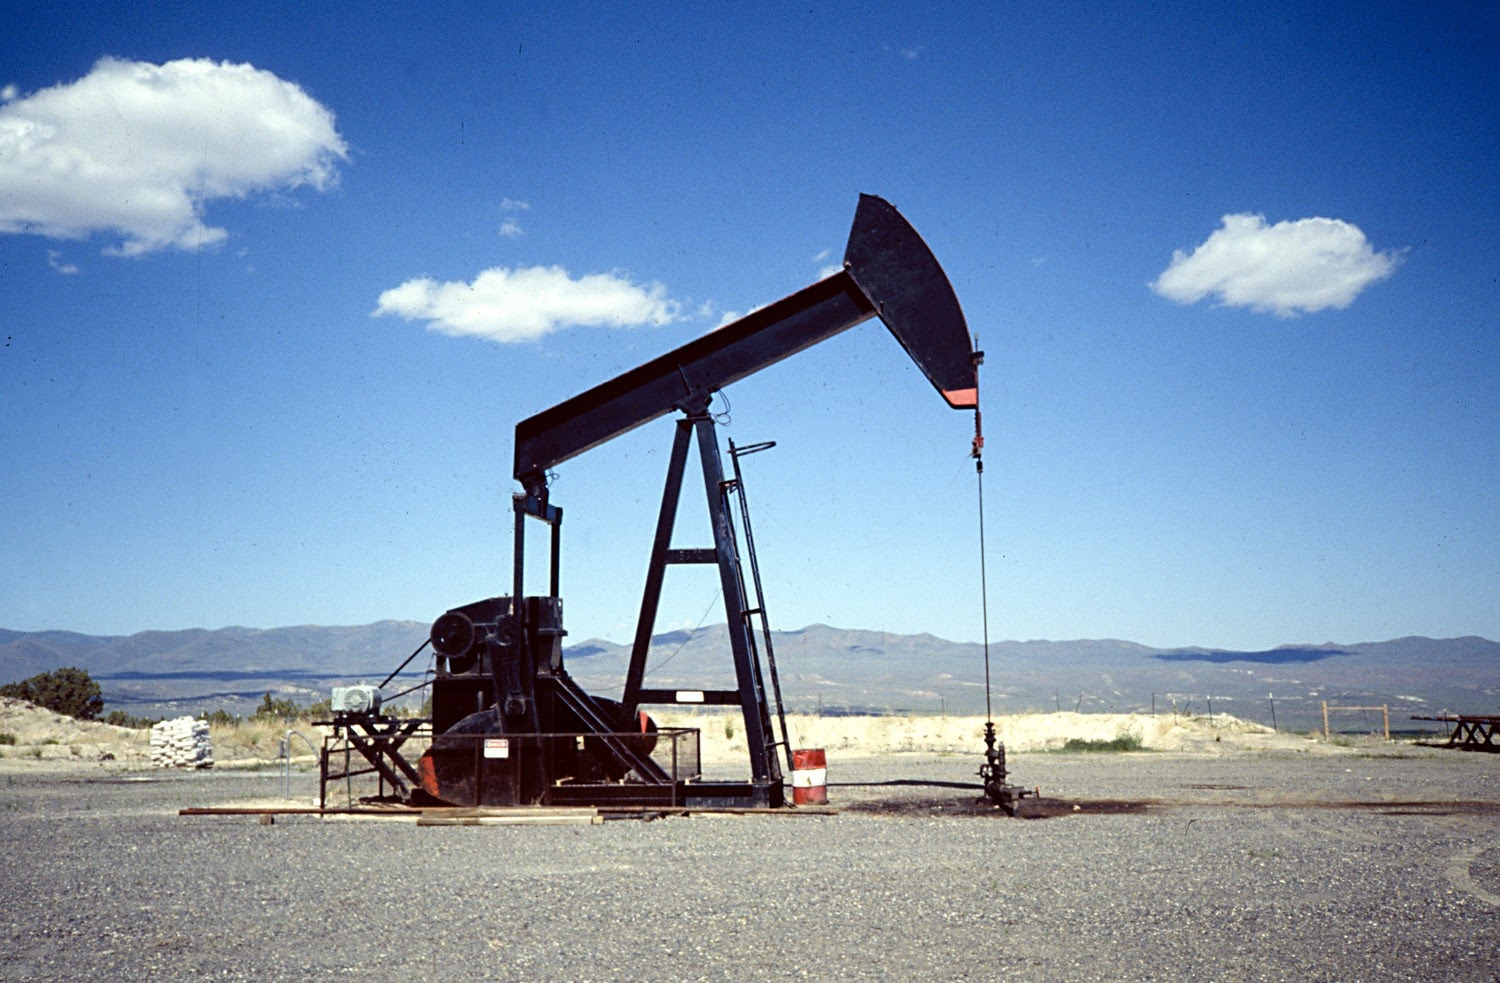 Free oil well pictures Oil Well Images, Stock Photos Vectors Shutterstock